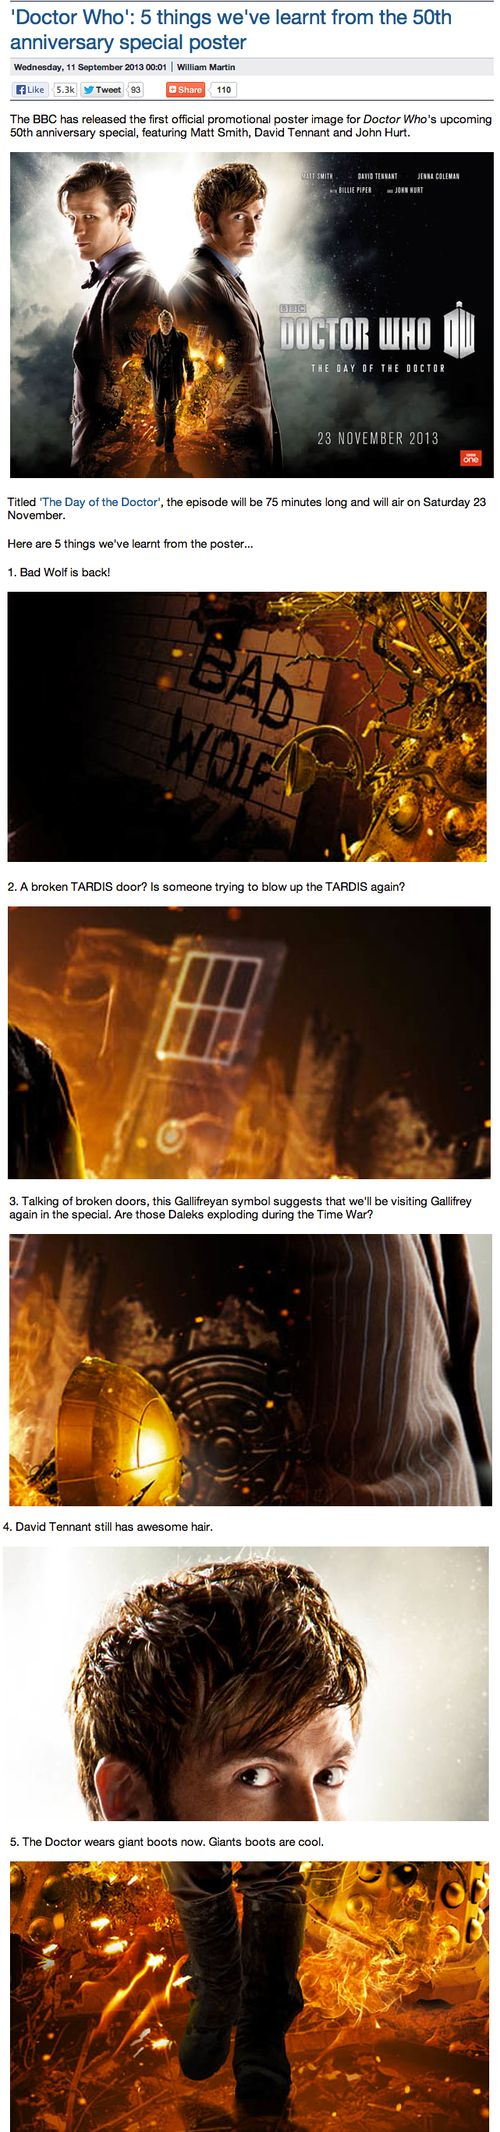 """5 Things We've Learnt From the 50th Anniversary Special Poster"""